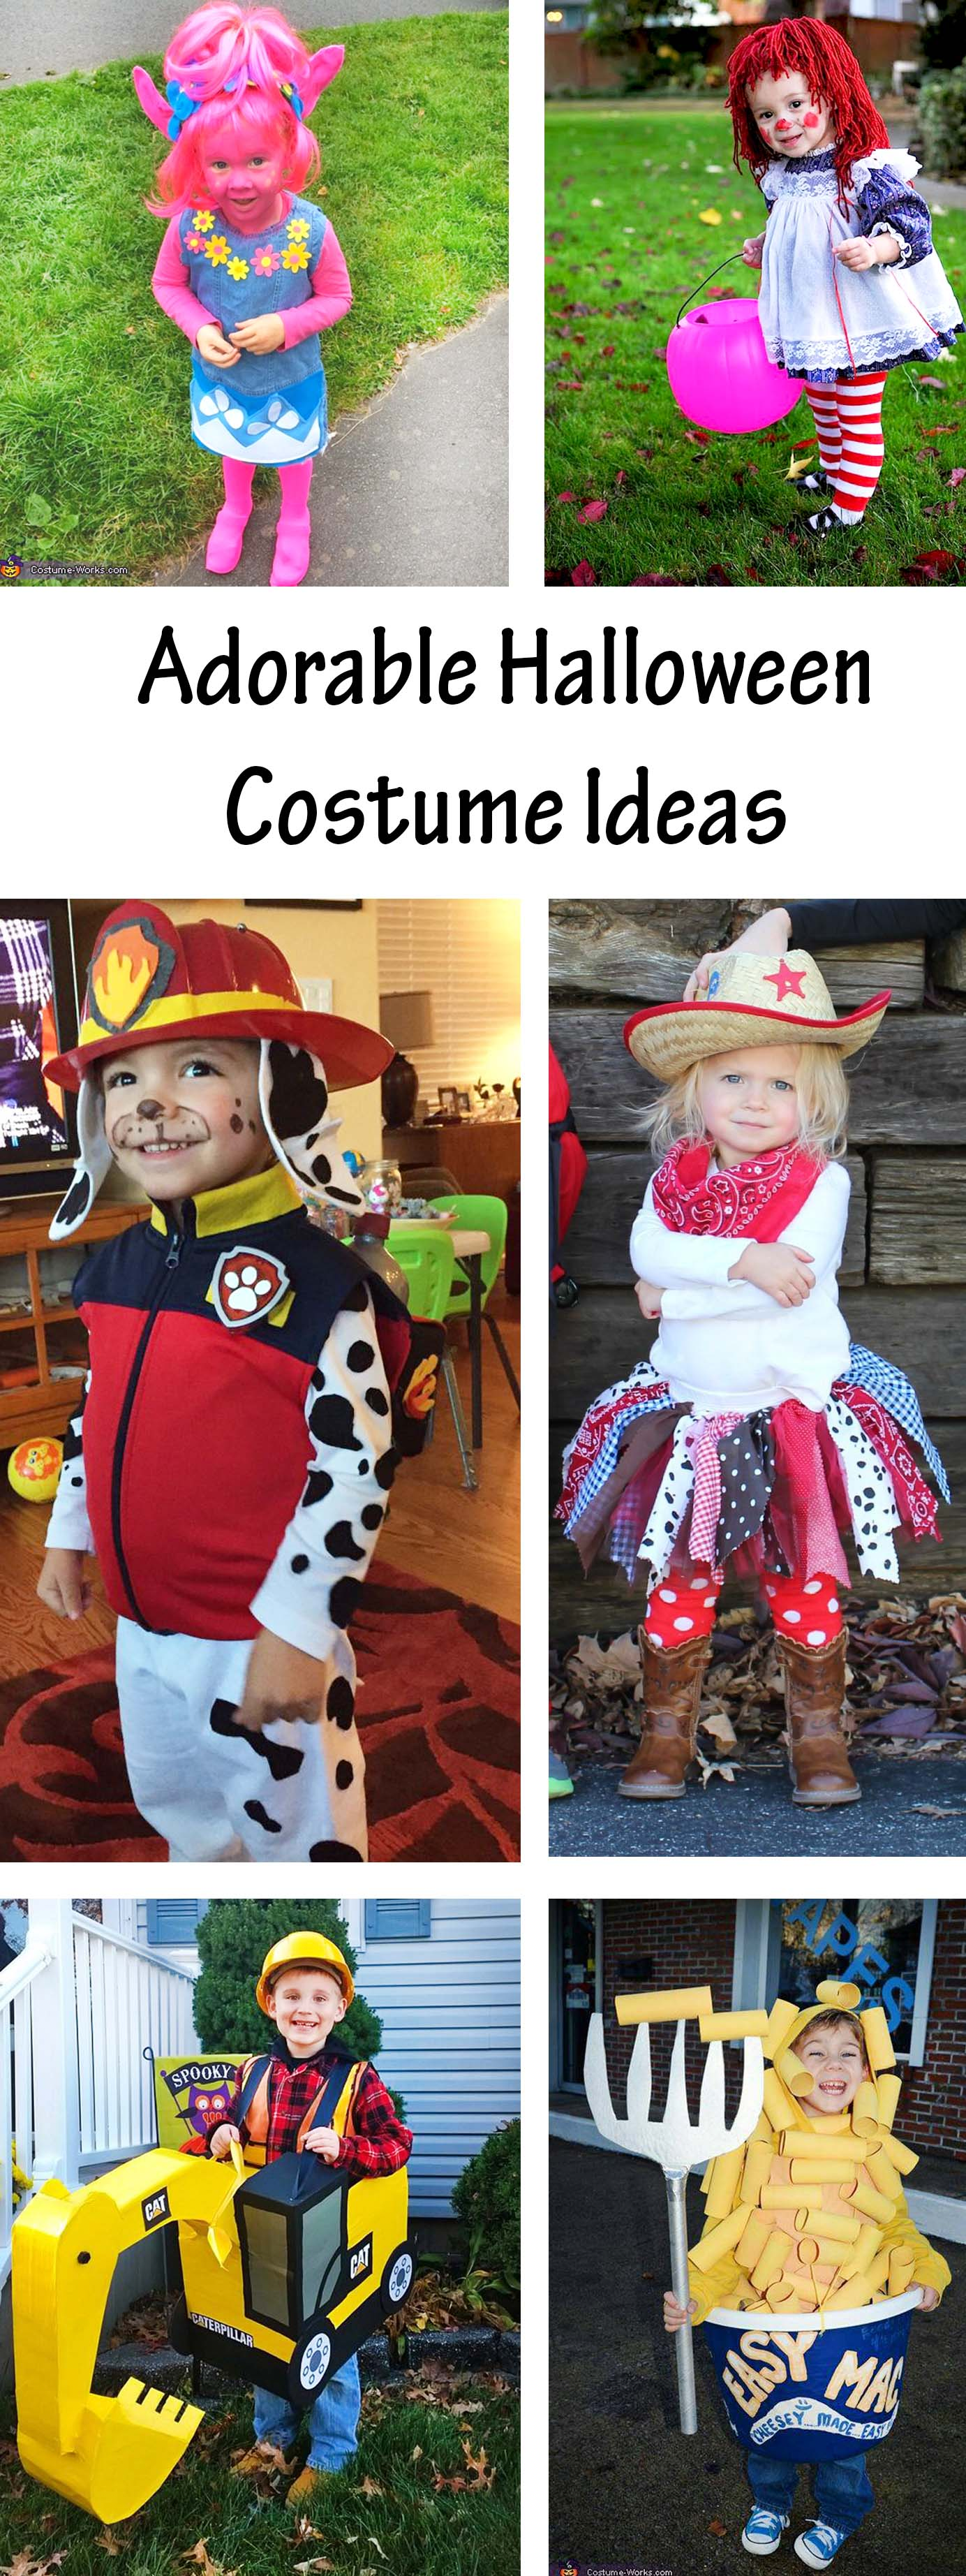 Adorable Halloween Costume Ideas The Keeper Of The Cheerios